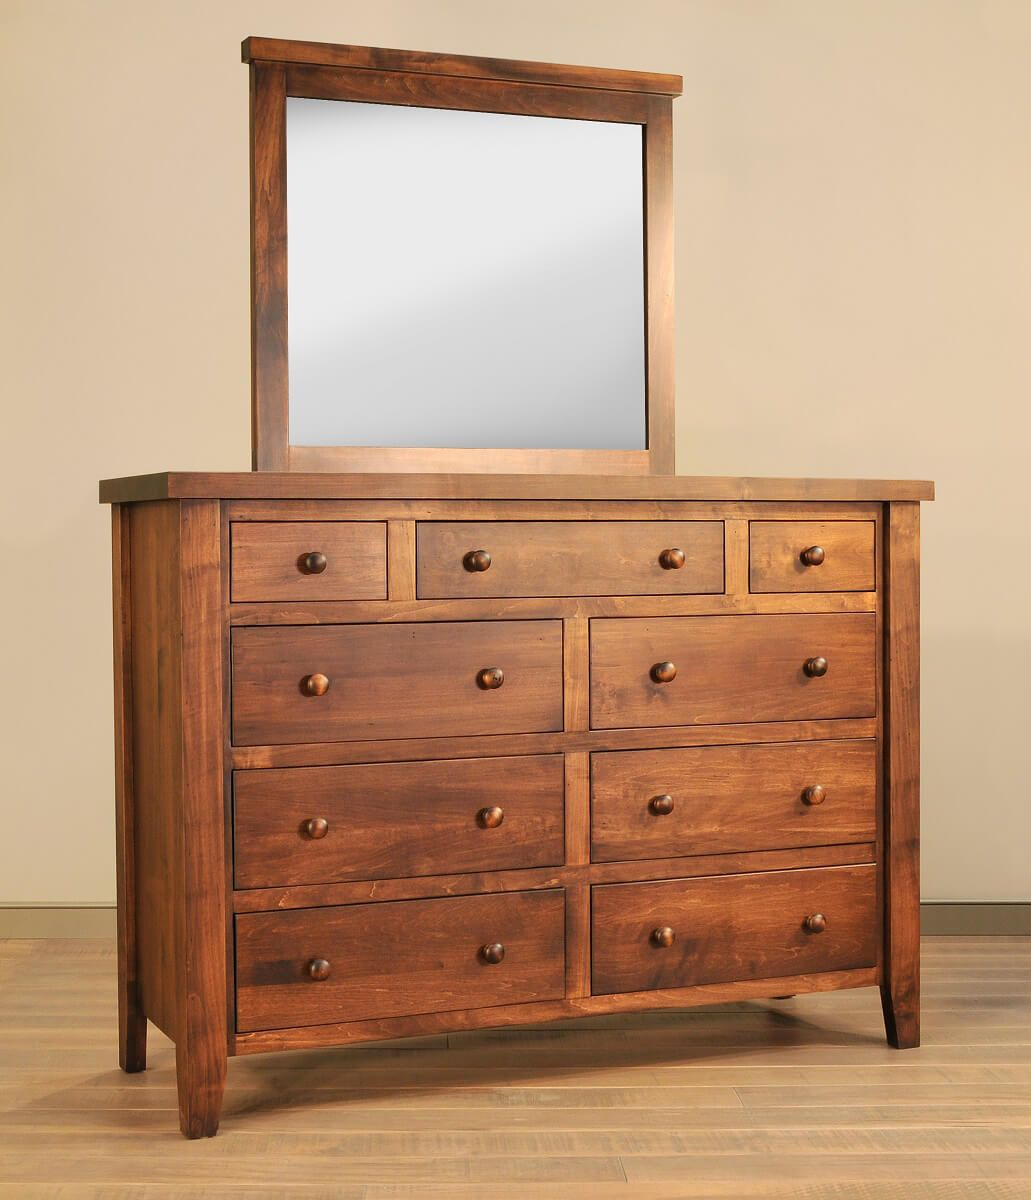 Rustic Dresser and Mirror